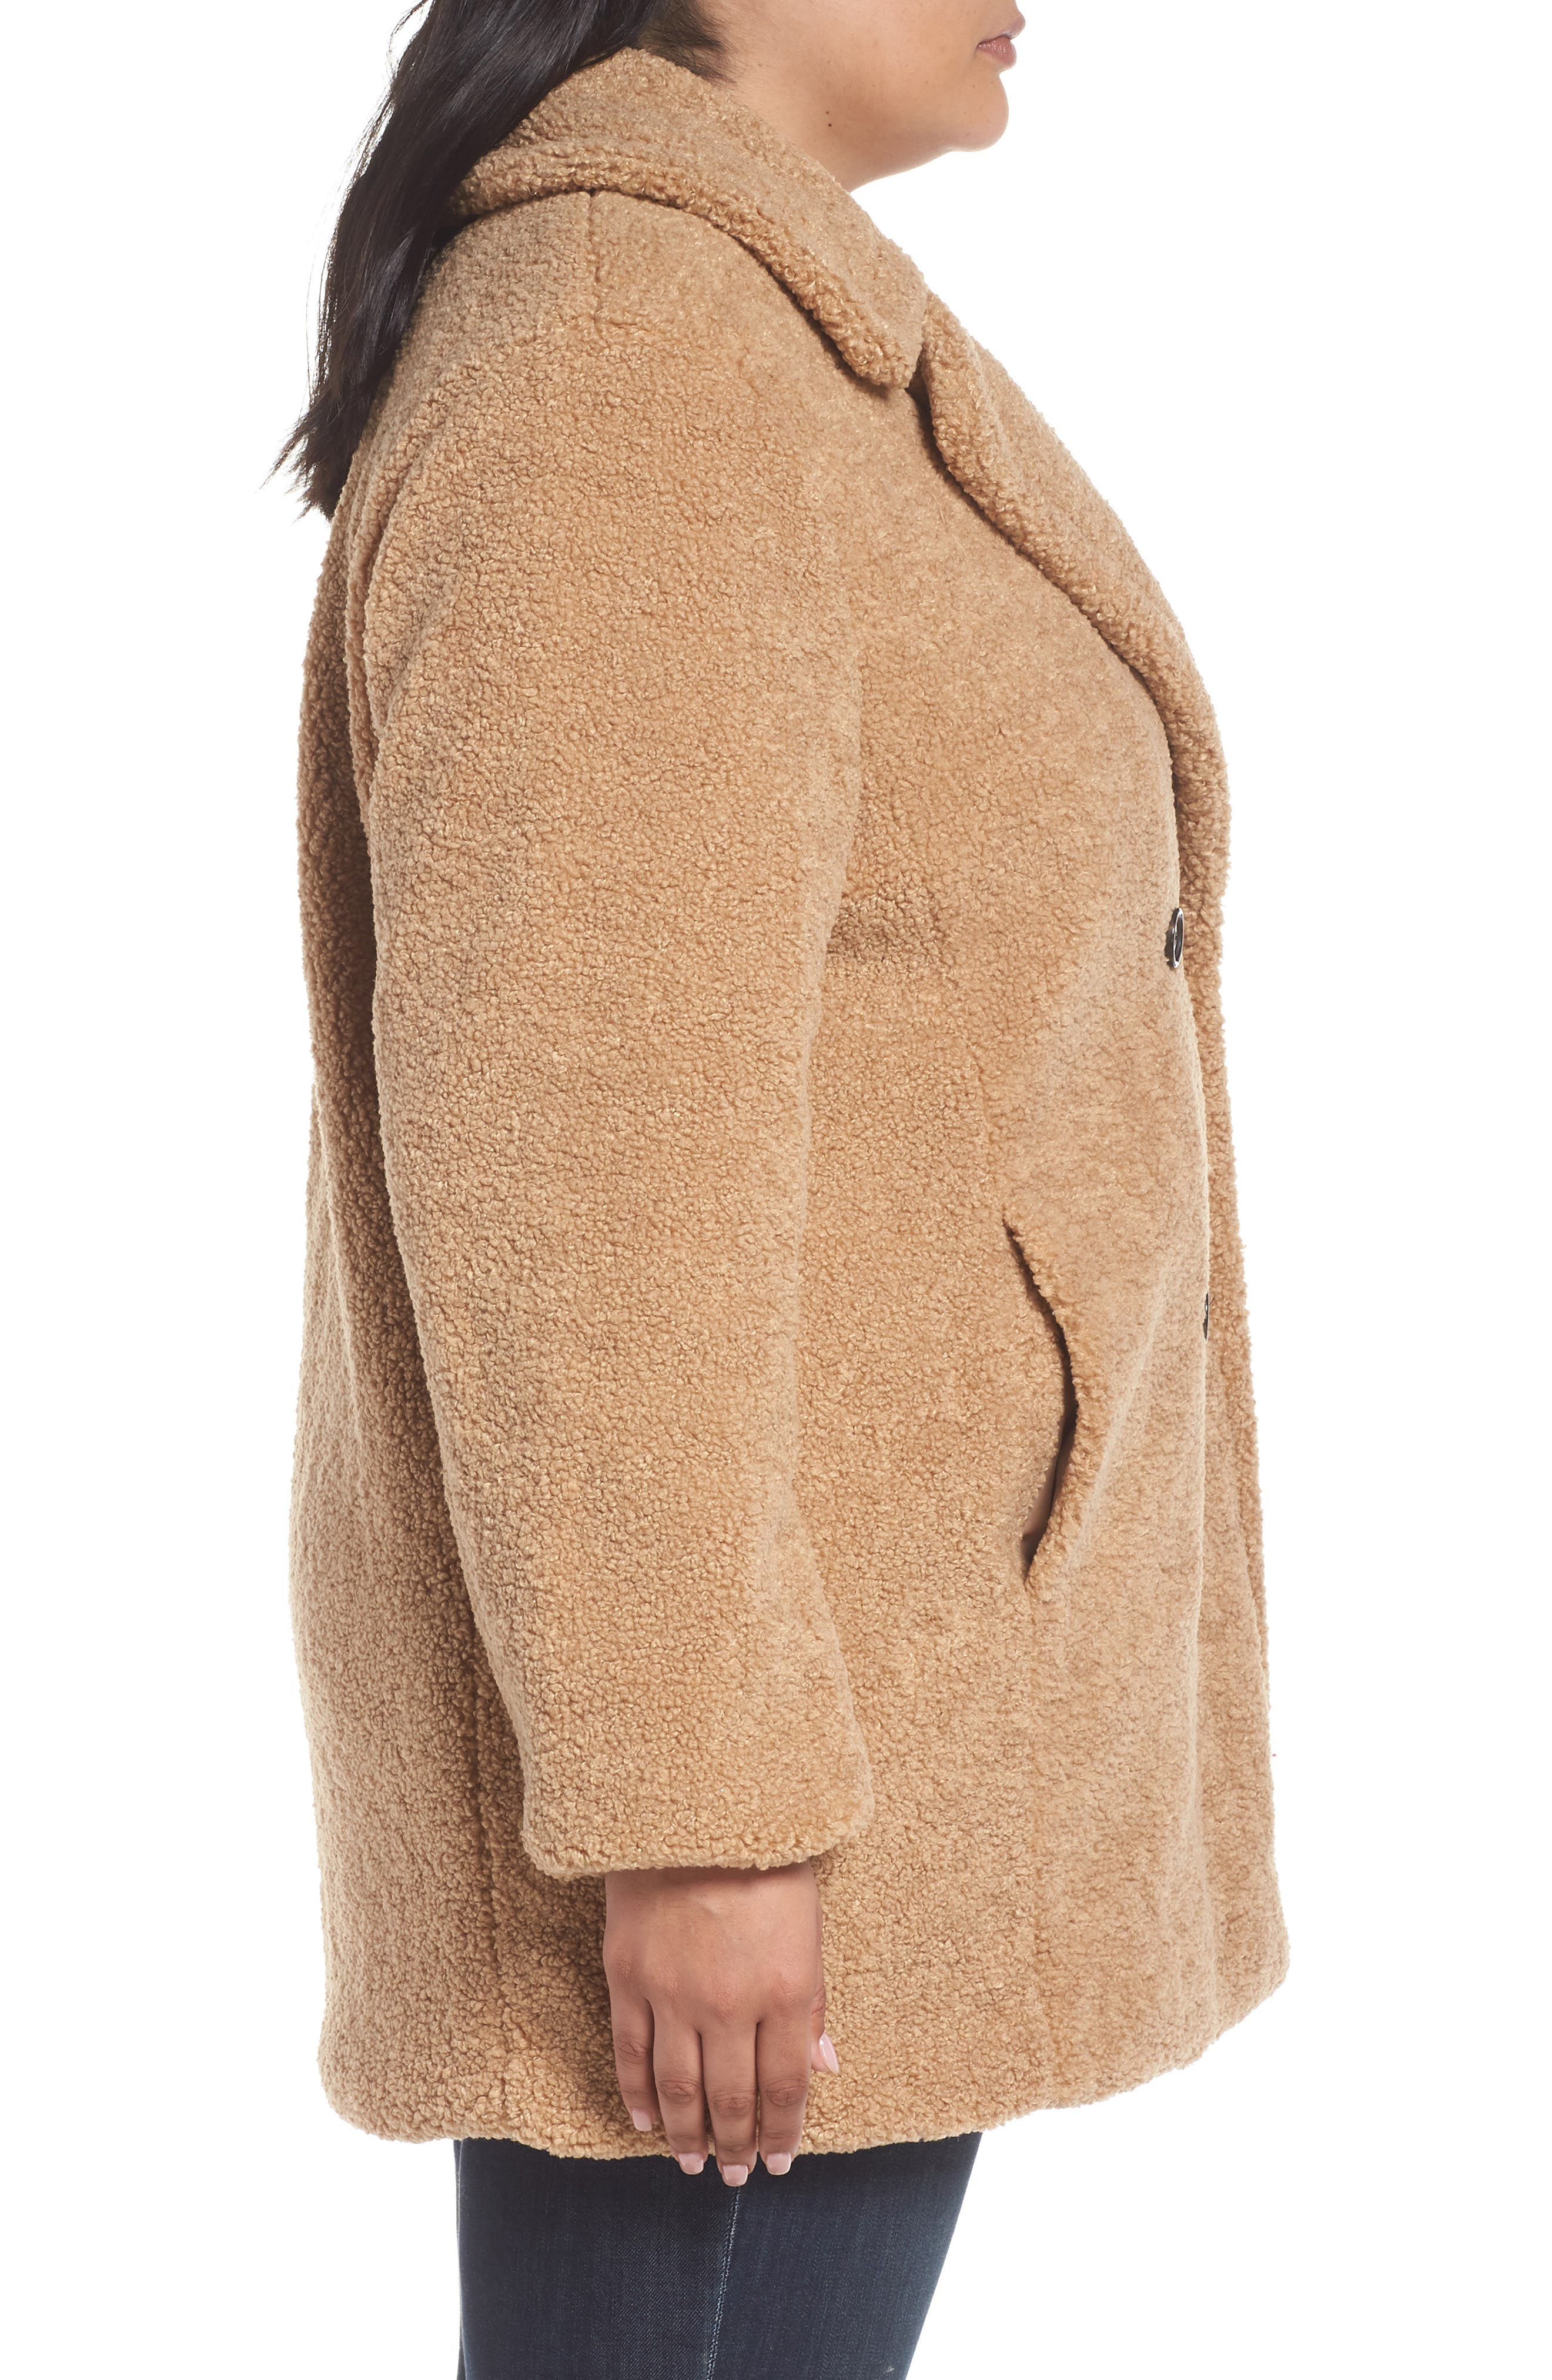 KENSIE,                             Teddy Bear Notch Collar Faux Fur Coat,                             Alternate thumbnail 4, color,                             788